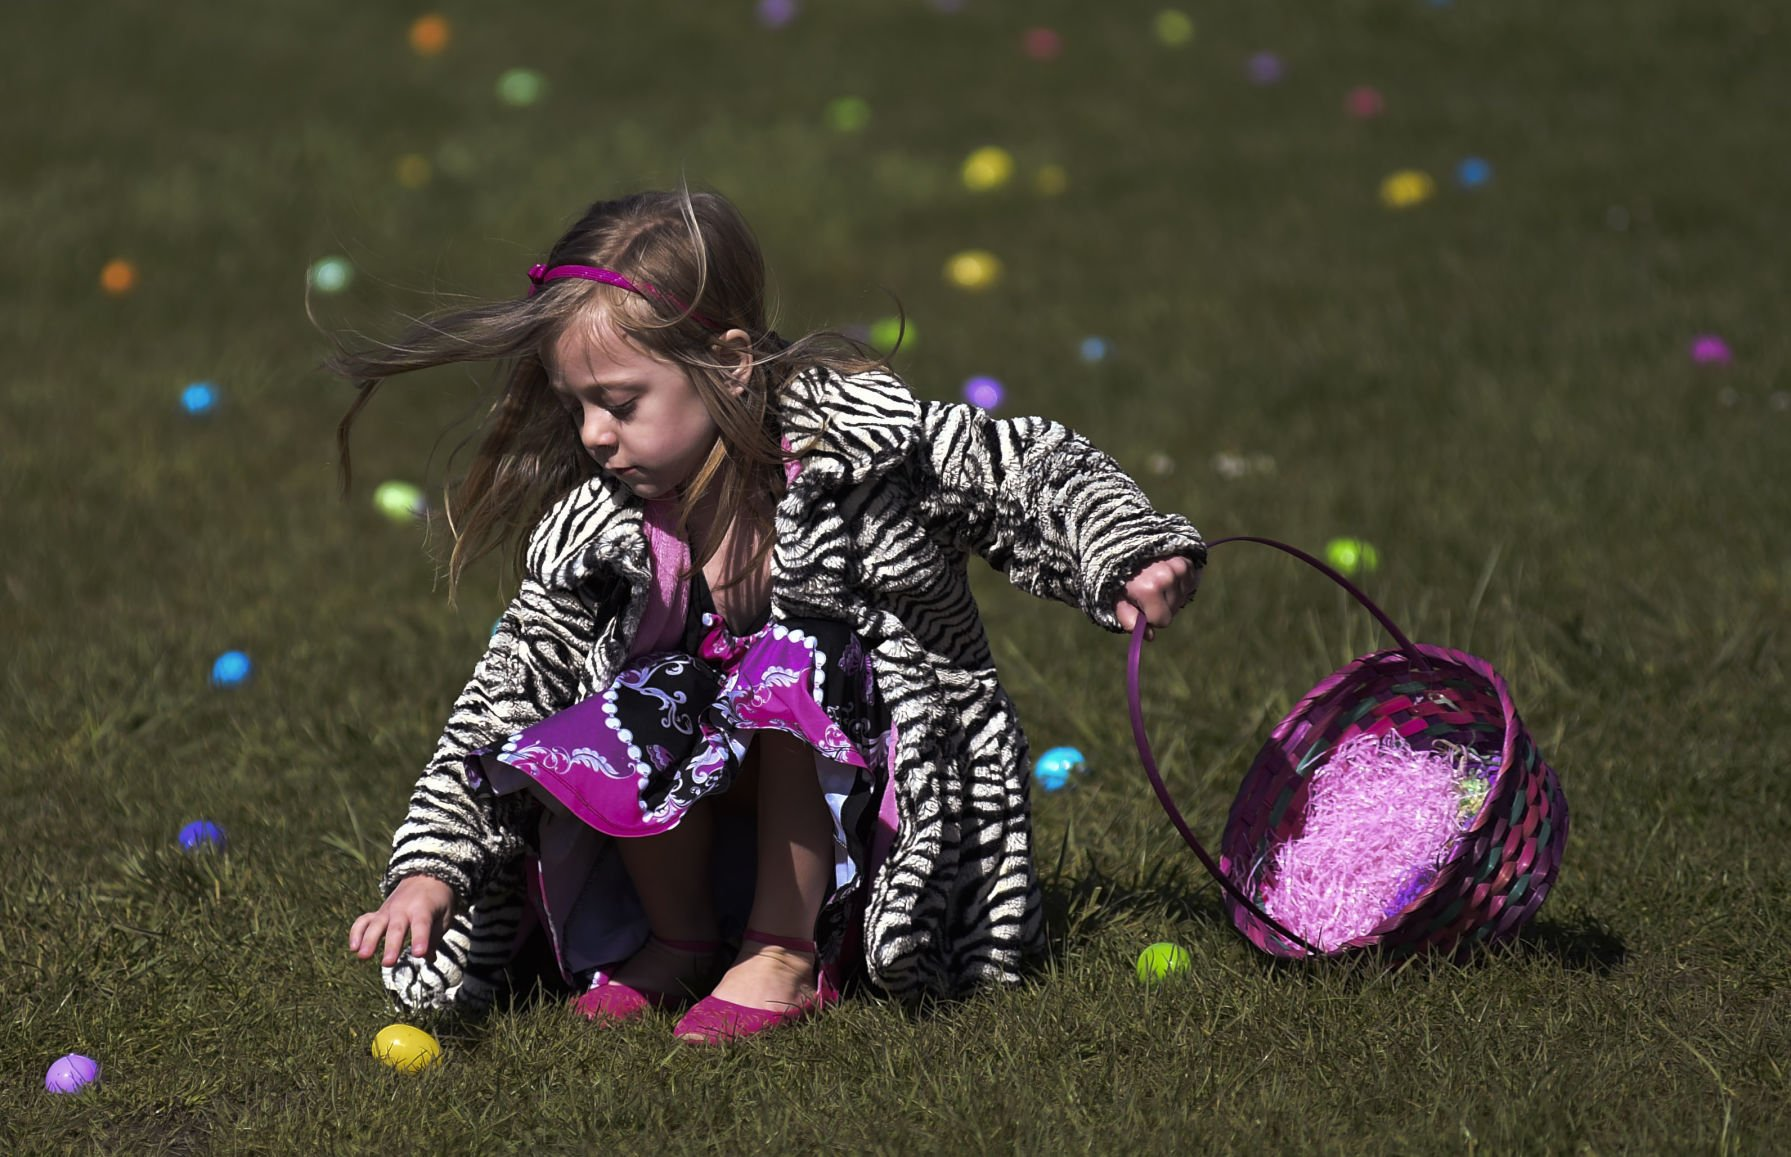 Kids listen for beeping eggs at special egg hunt